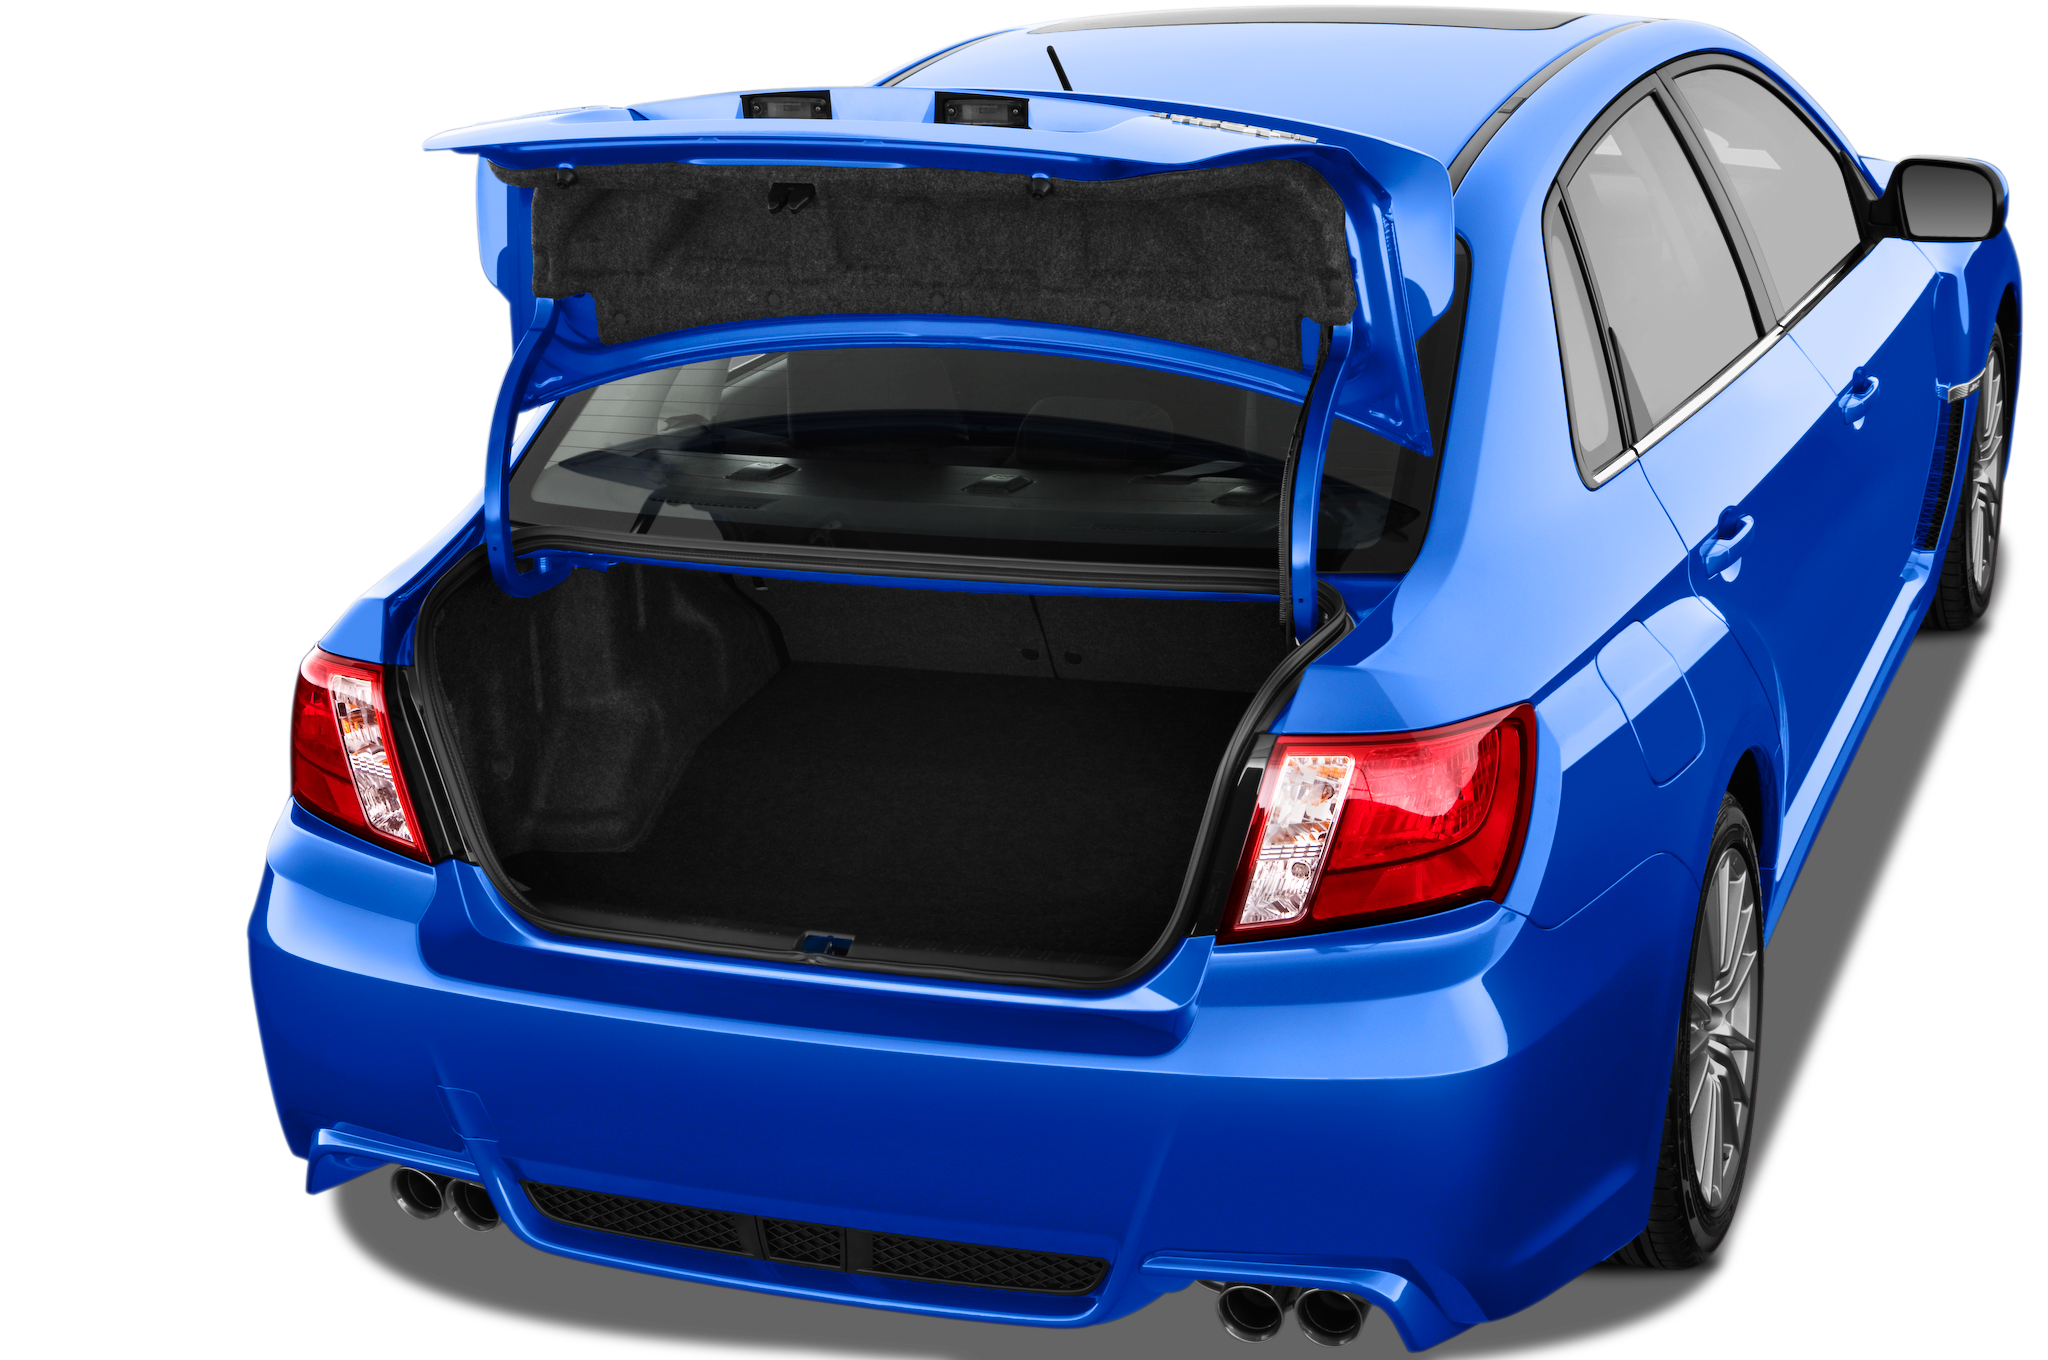 Car open trunk clipart picture royalty free download 2012 Subaru Impreza 2.0i Sport Limited - Editors' Notebook ... picture royalty free download